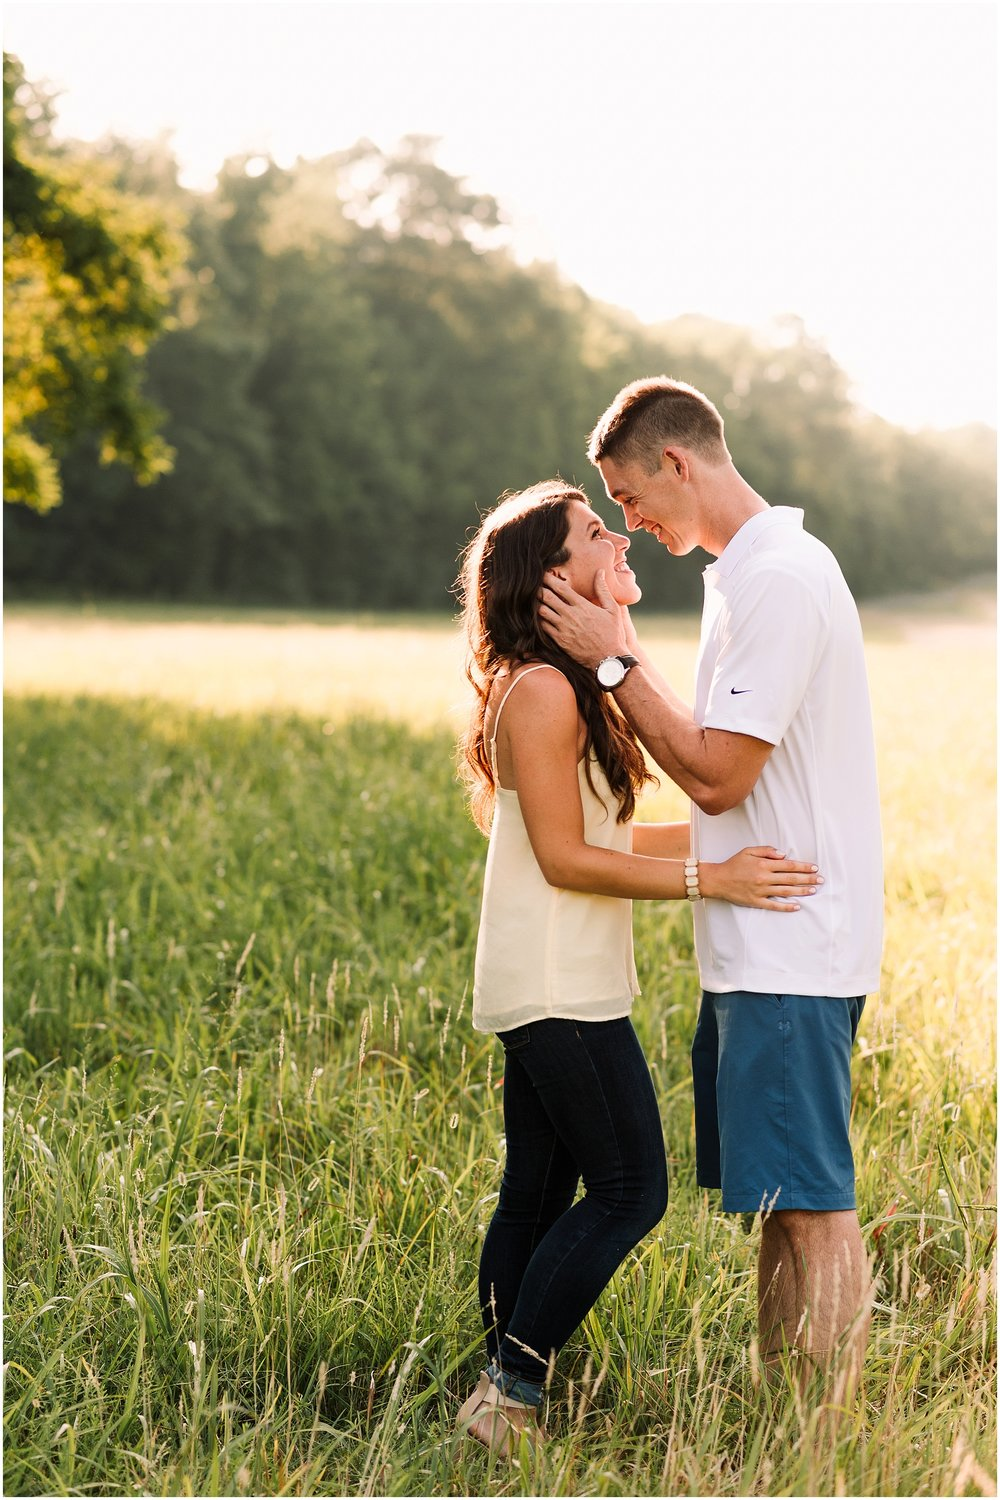 Hannah Leigh Photography Edgewater MD Engagement Session_4917.jpg